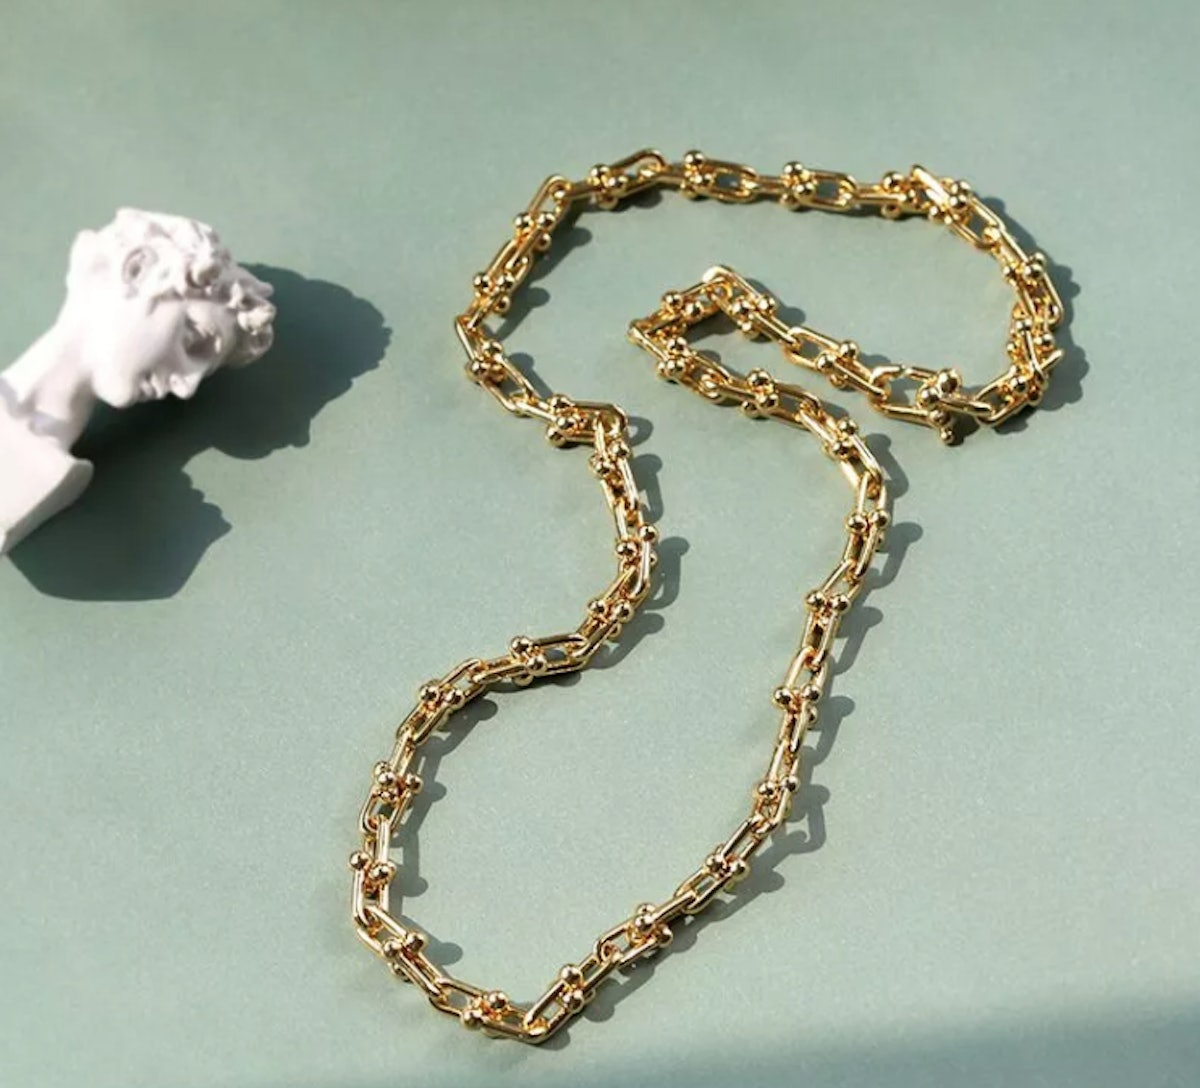 The Vicky Chain